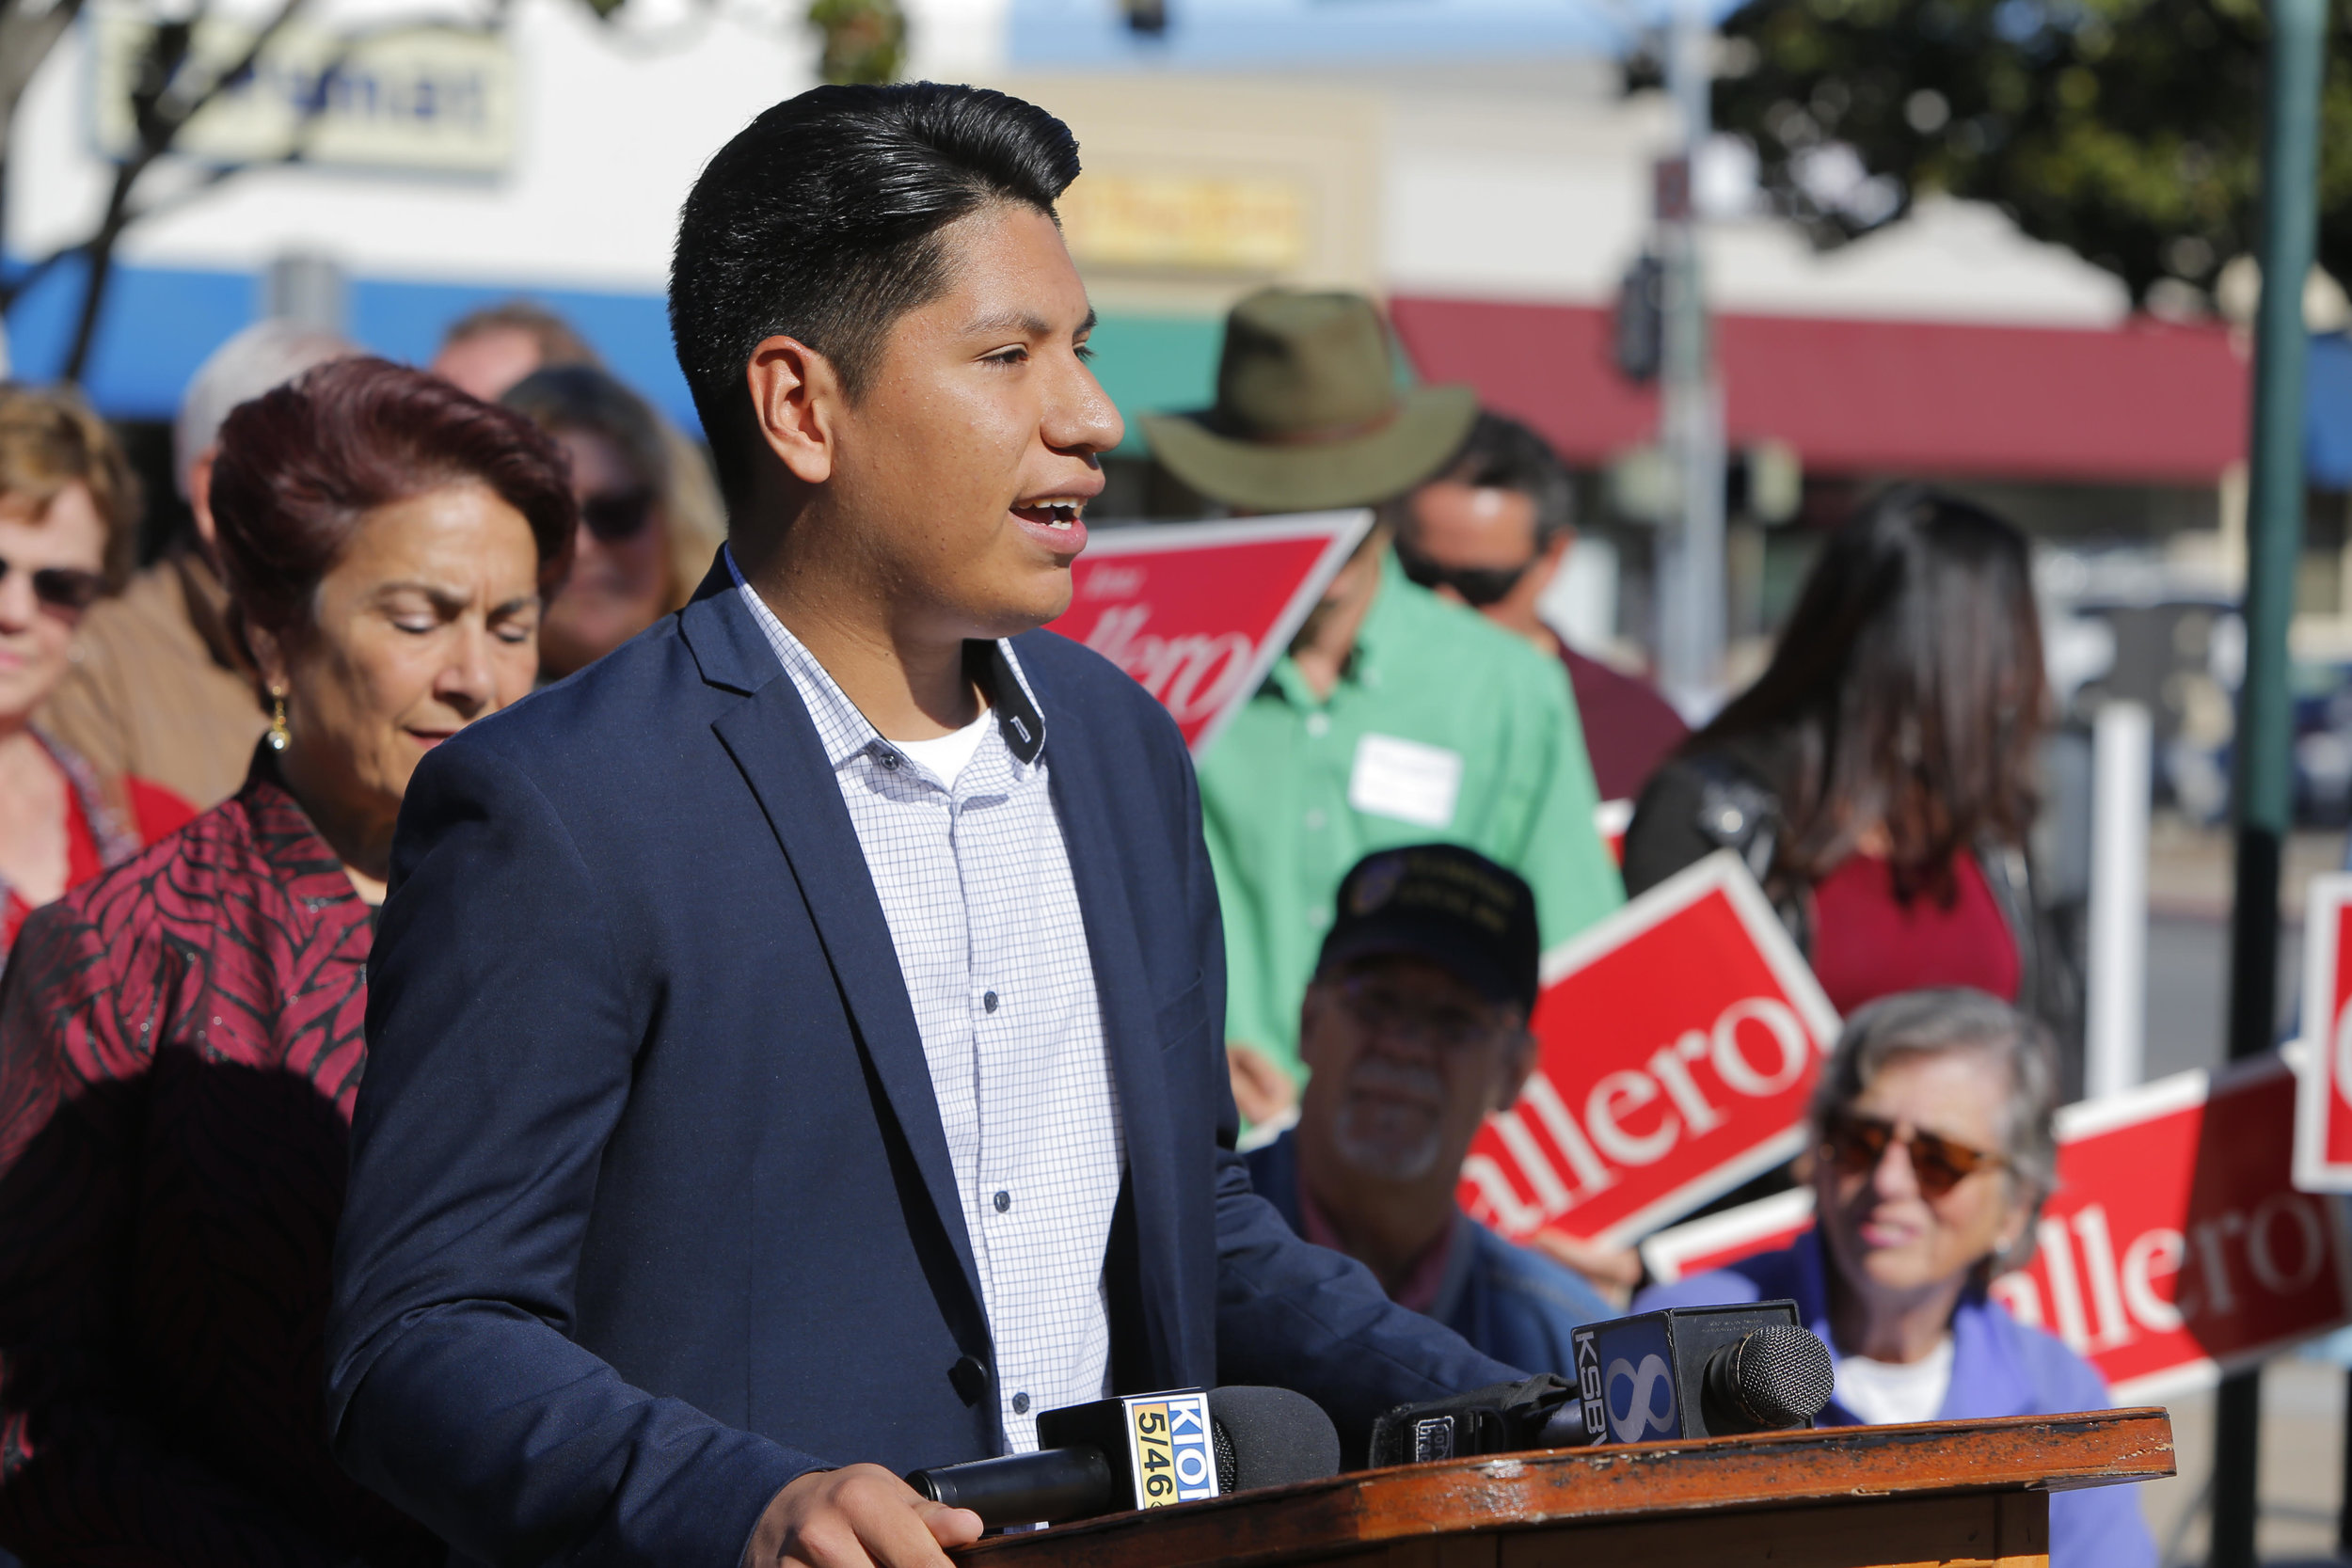 Anthony Rocha for  Salinas Unified High School Board - At 19, Anthony Rocha has already served on multiple city commissions and is dedicated to local government. He aims to give young people a seat at the table by running to be a member of the Salinas Unified High School Board.